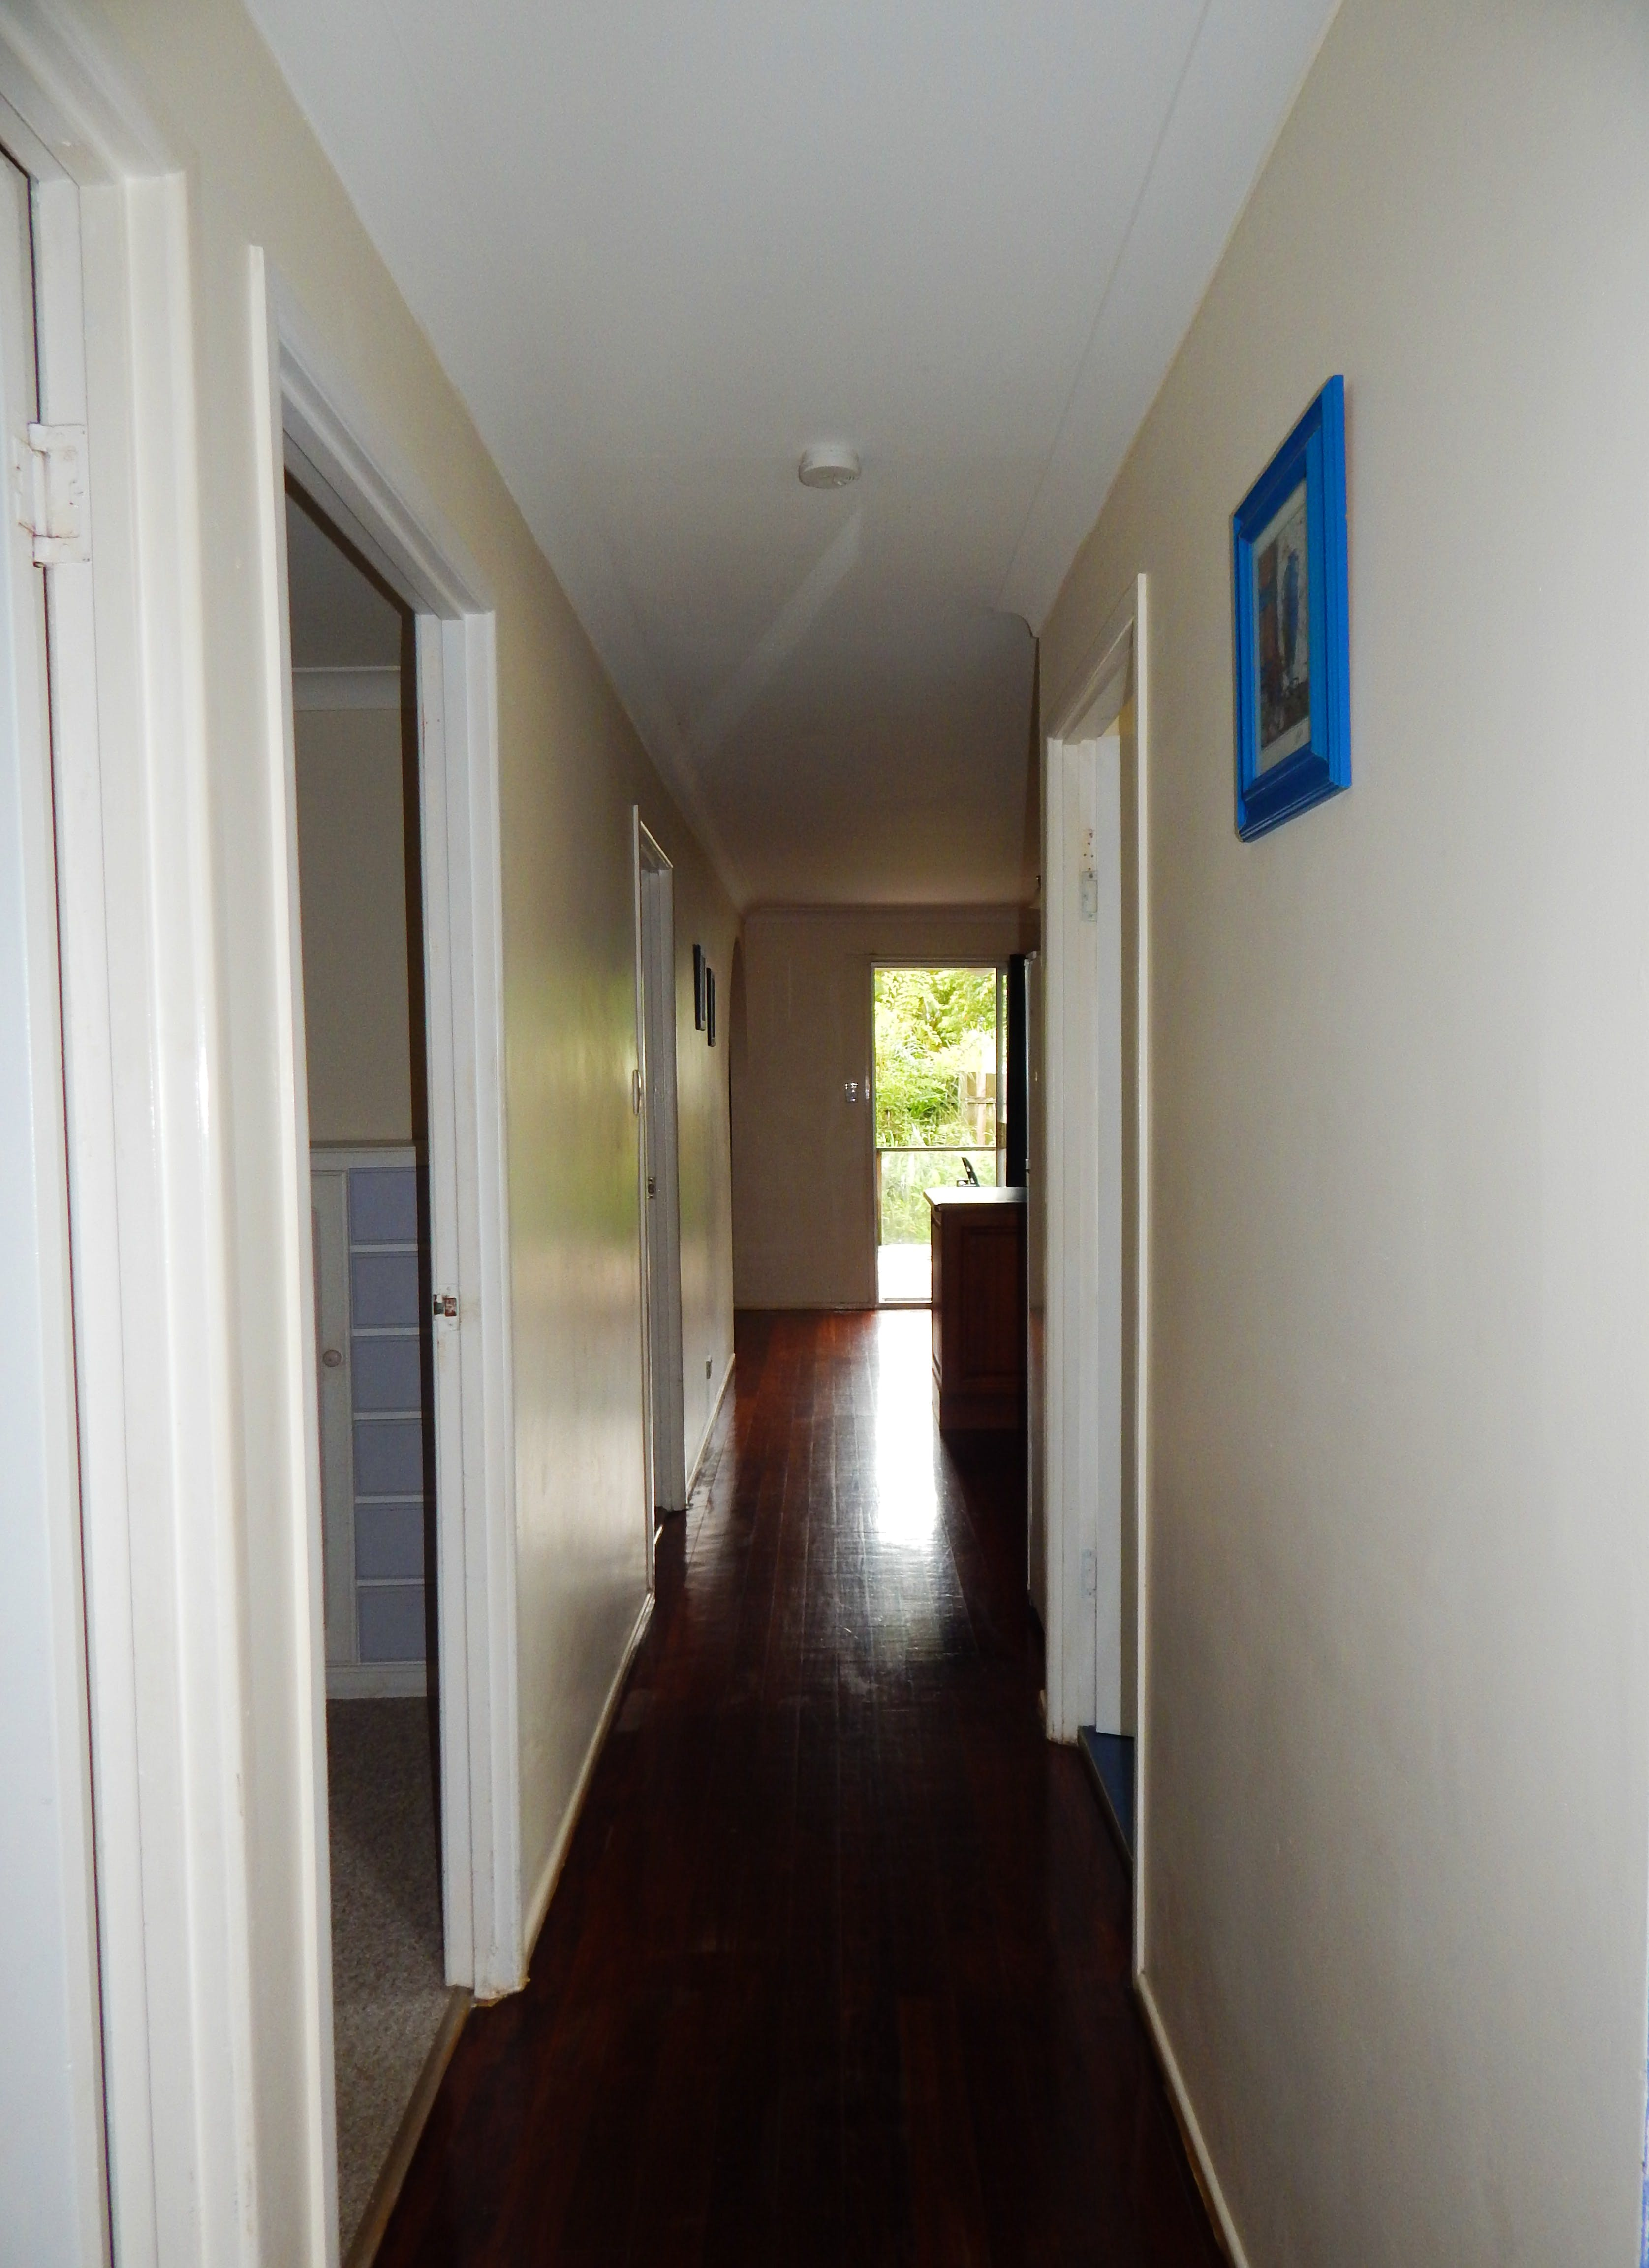 Hallway looking to deck